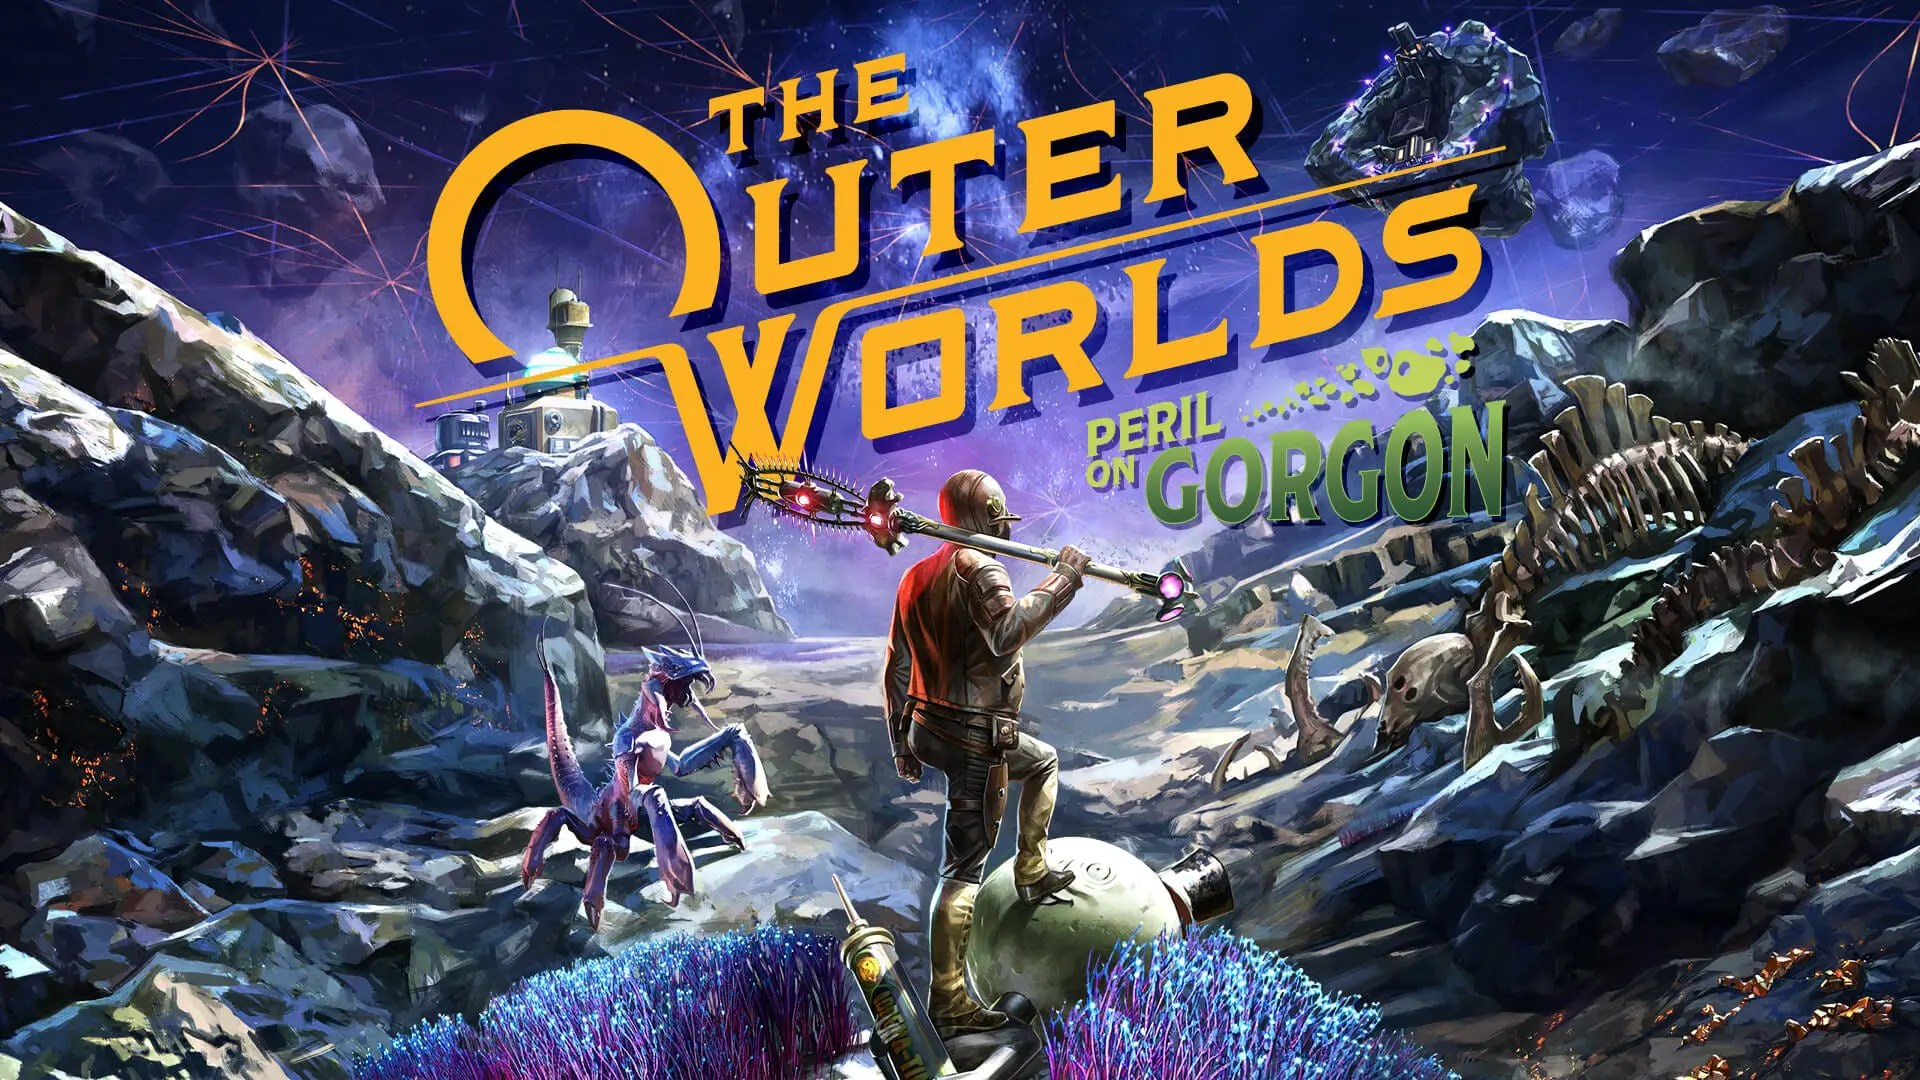 The Outer Worlds: Peril on Gorgon (Playstation 4) | Análise Gaming | CA Notícias